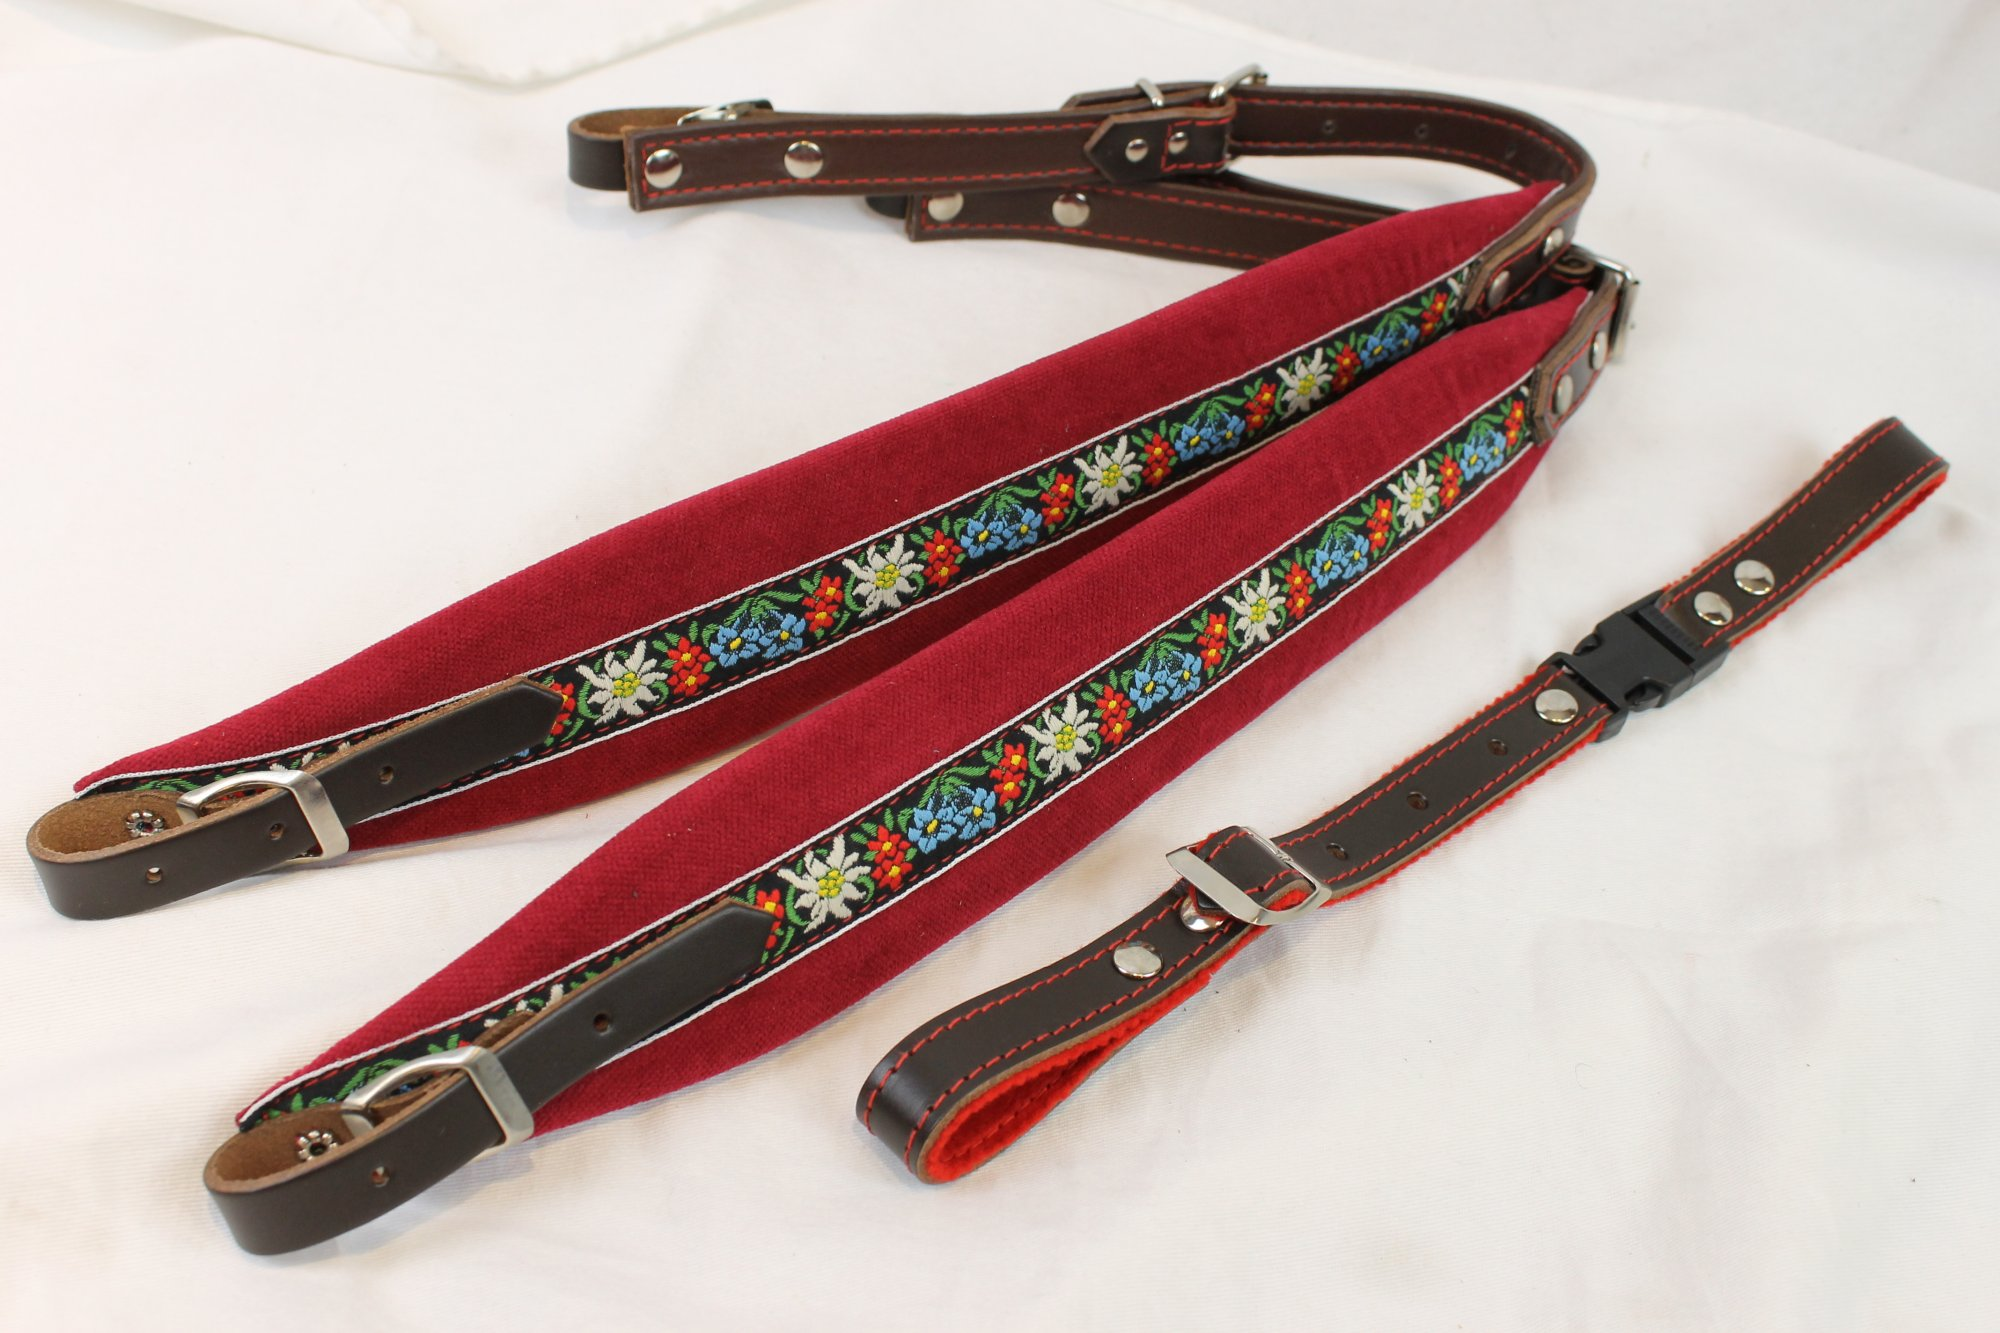 New Red Alpine Velour Fuselli Accordion Shoulder Straps Width (6cm / 2.4in) Length (65~77cm / 25.5~35.5in)